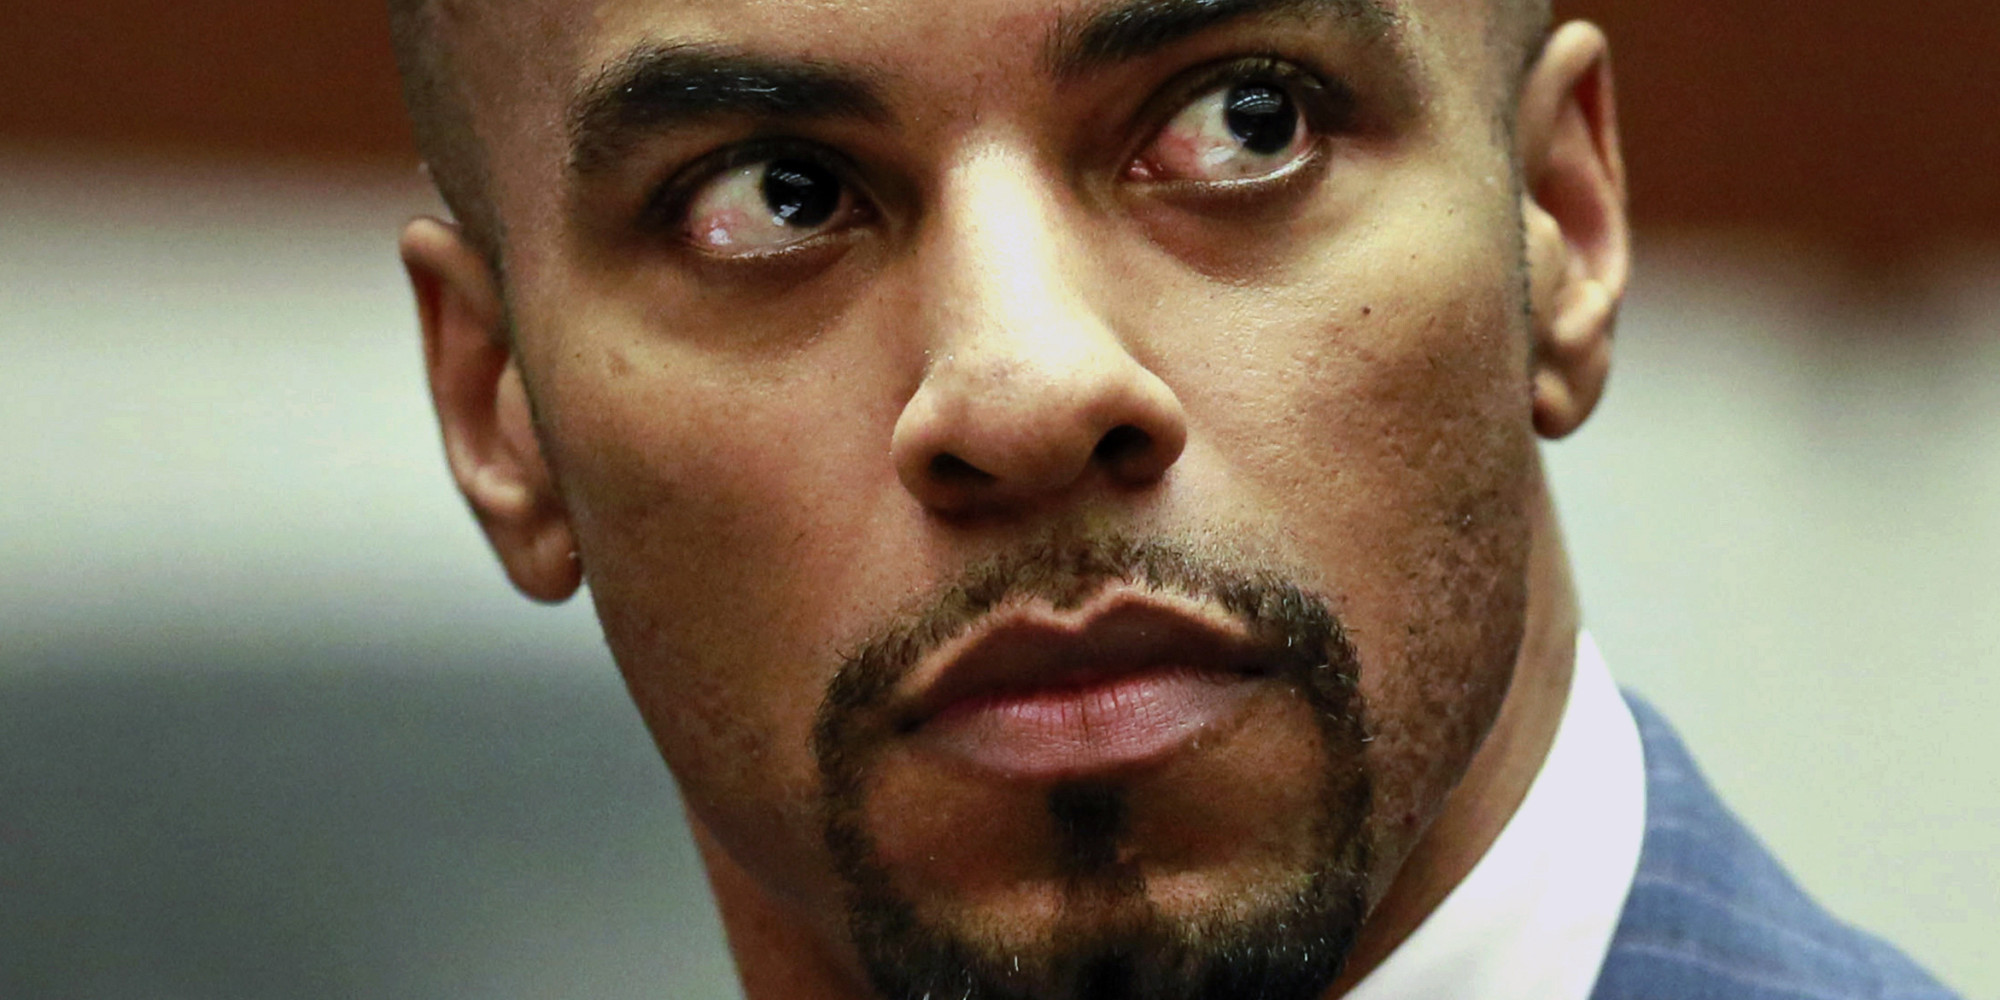 Darren Sharper May Have Penis Monitored As Part Of Probation